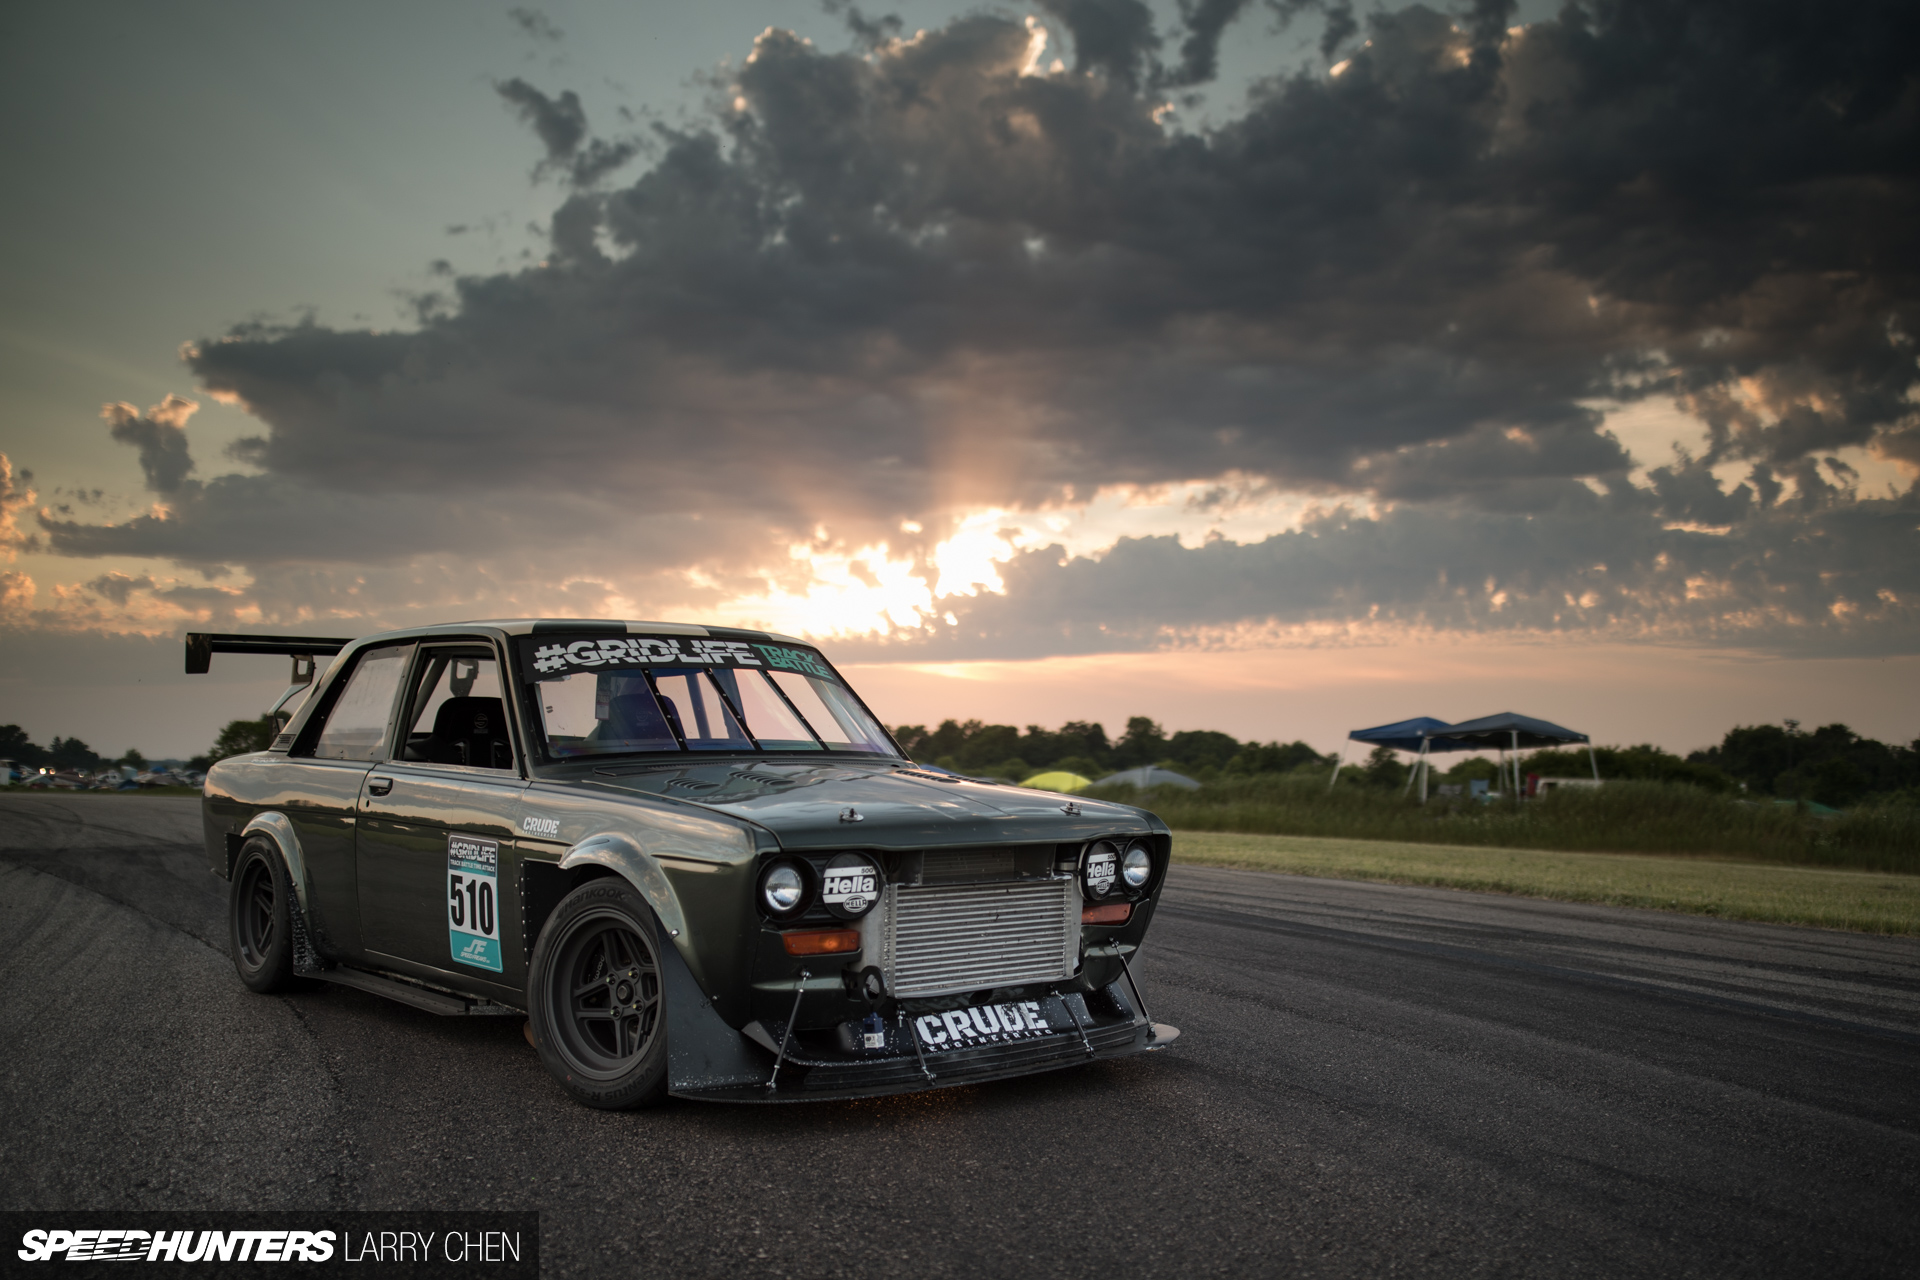 The Cars Of Gridlife Speedhunters